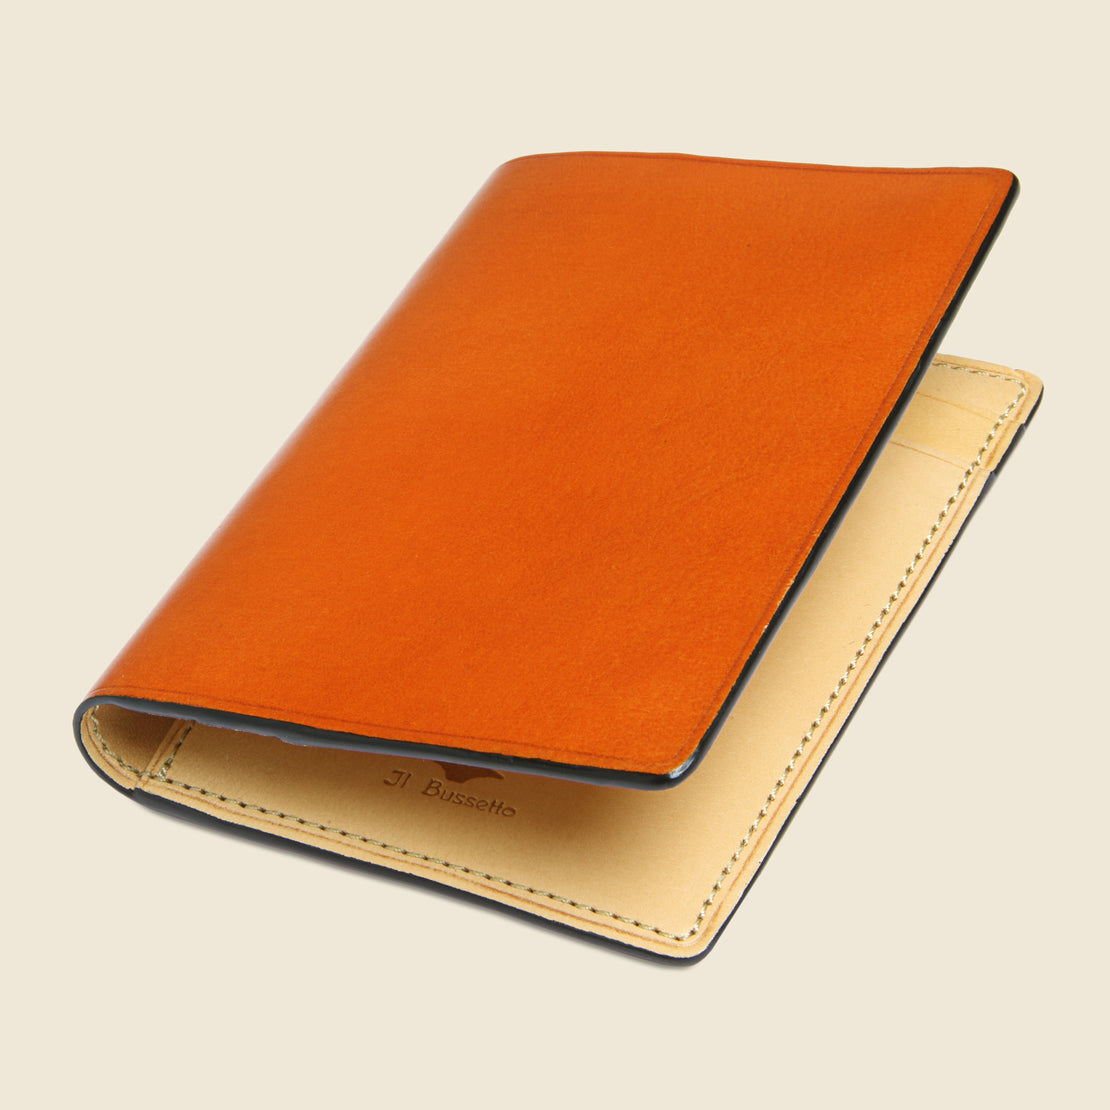 Bi-Fold Card Case - Orange - Il Bussetto - STAG Provisions - Accessories - Wallets